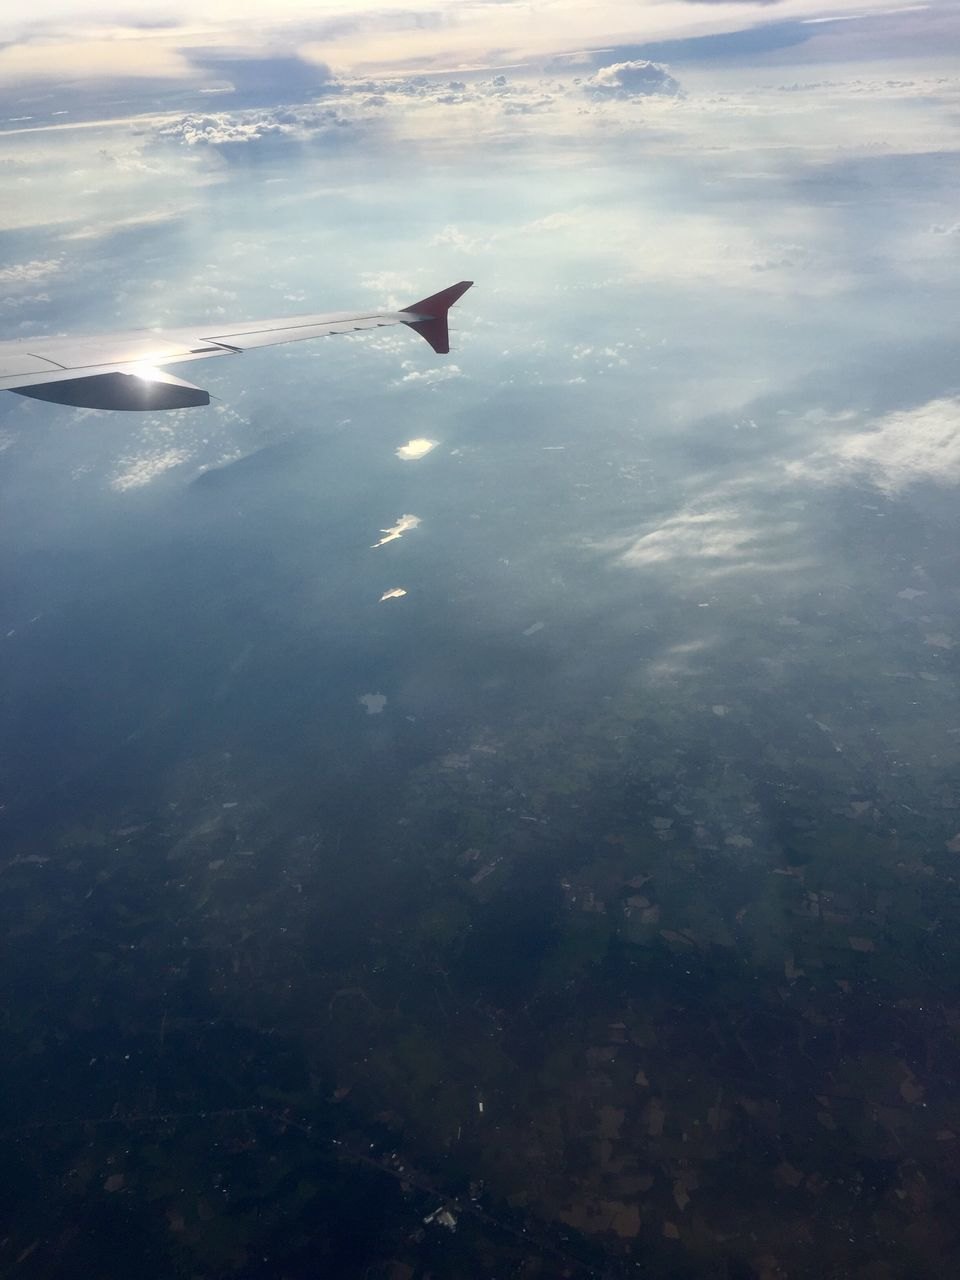 aerial view, nature, airplane, airplane wing, transportation, no people, sea, beauty in nature, day, outdoors, water, sky, scenics, flying